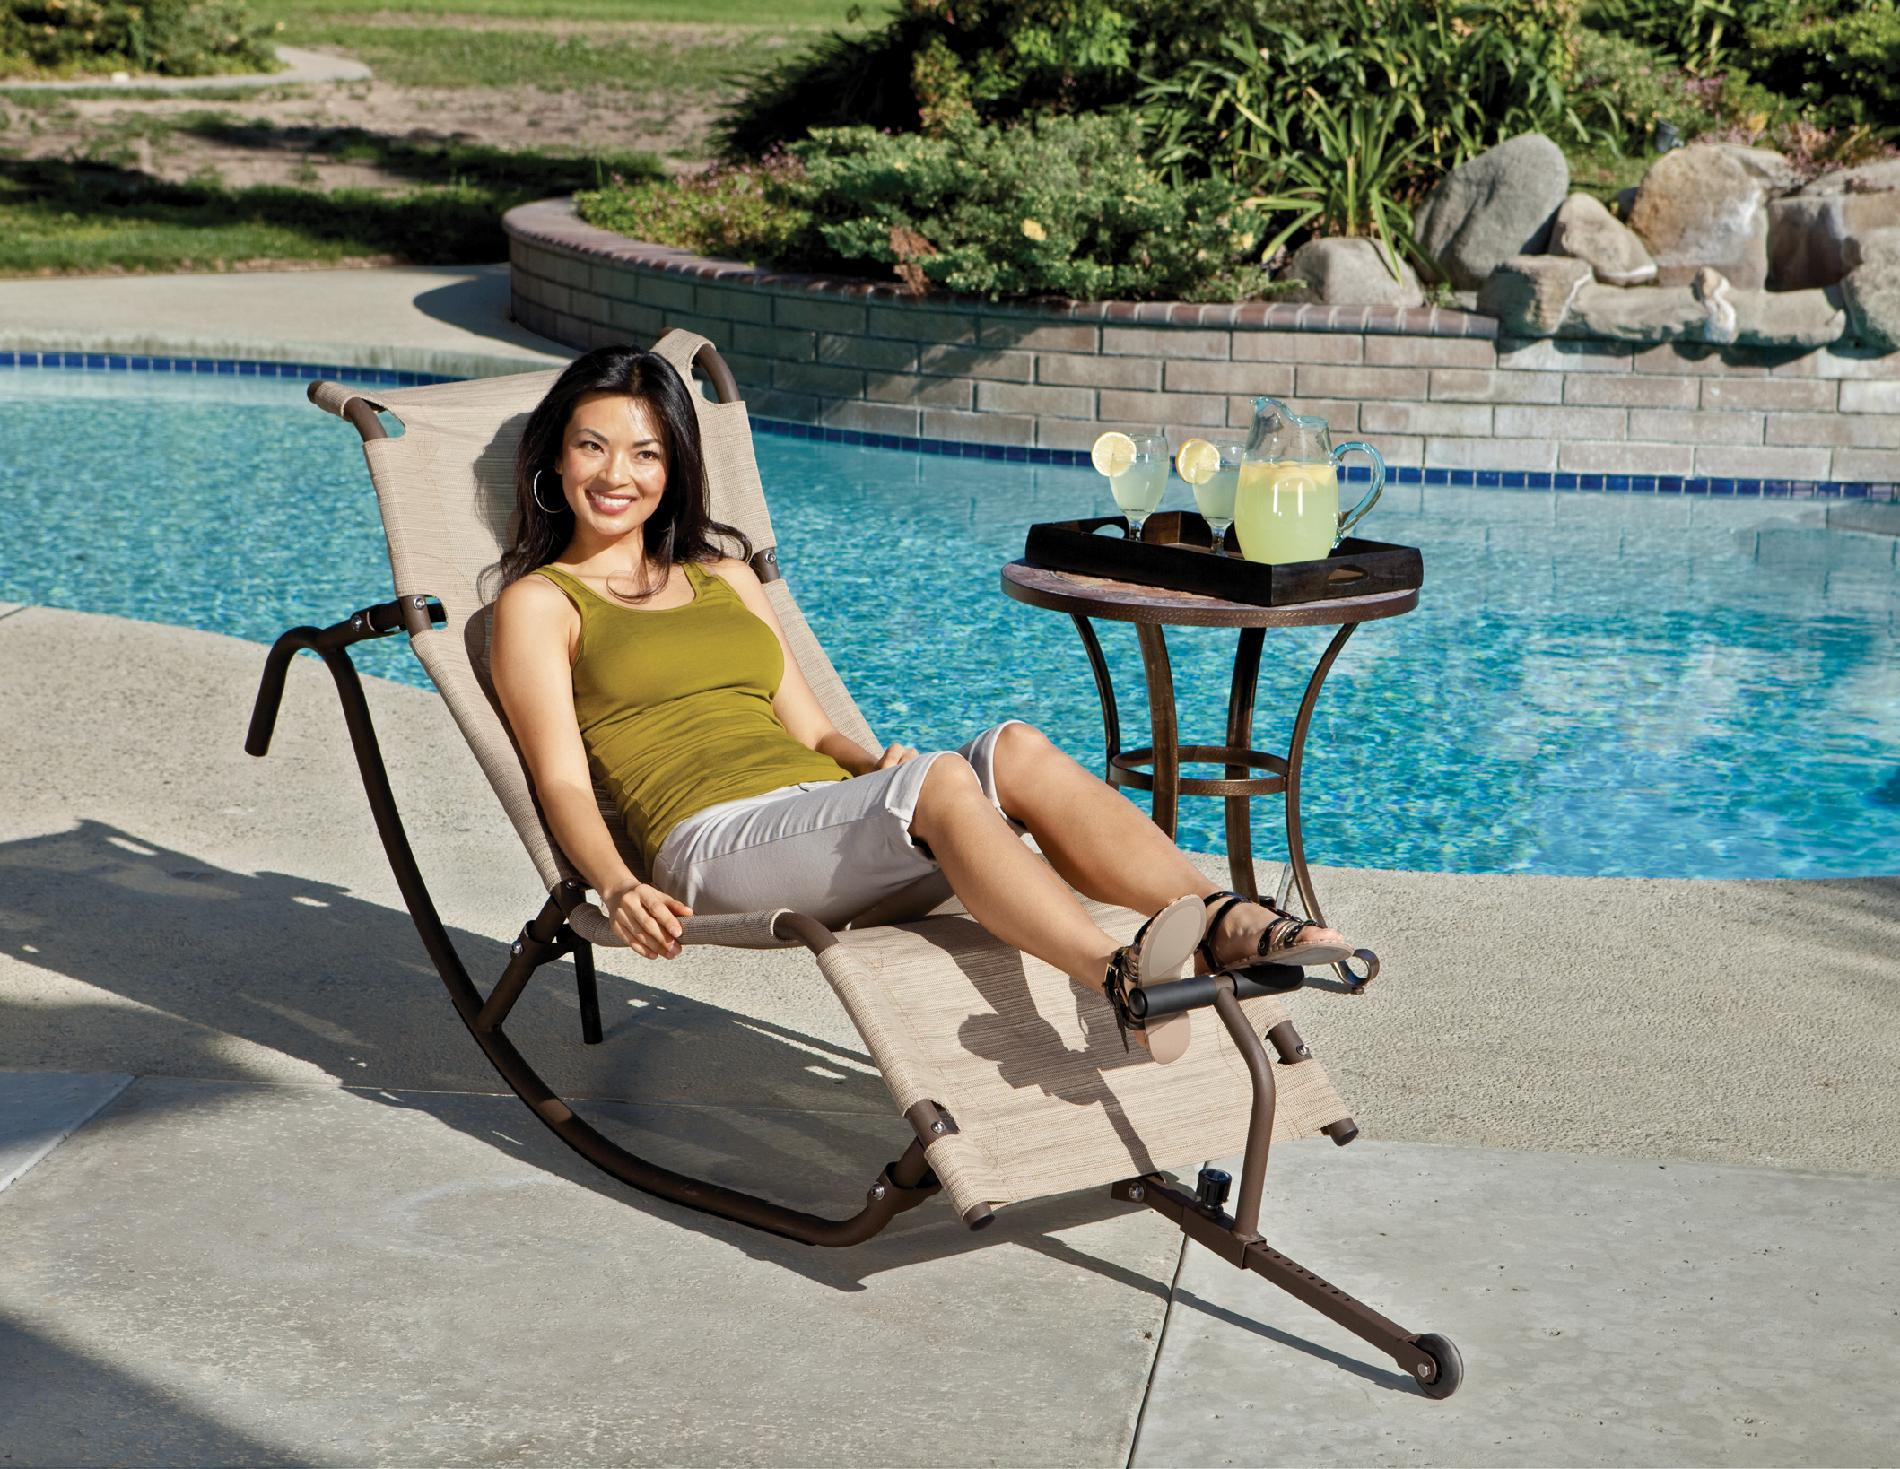 Zero Gravity Outdoor Lounge Chair The 4 Best Zero Gravity Chairs On The Market Reviews Guide 2019